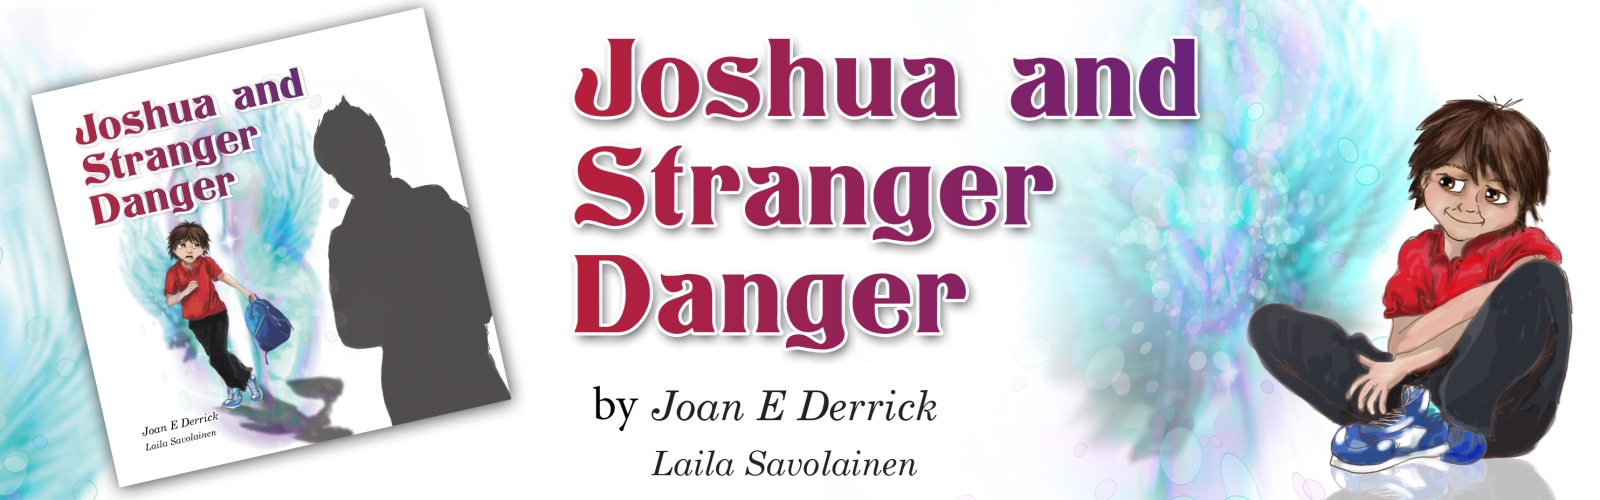 Web_Banner-for-Joshua-nad-Stranger-Danger Slider